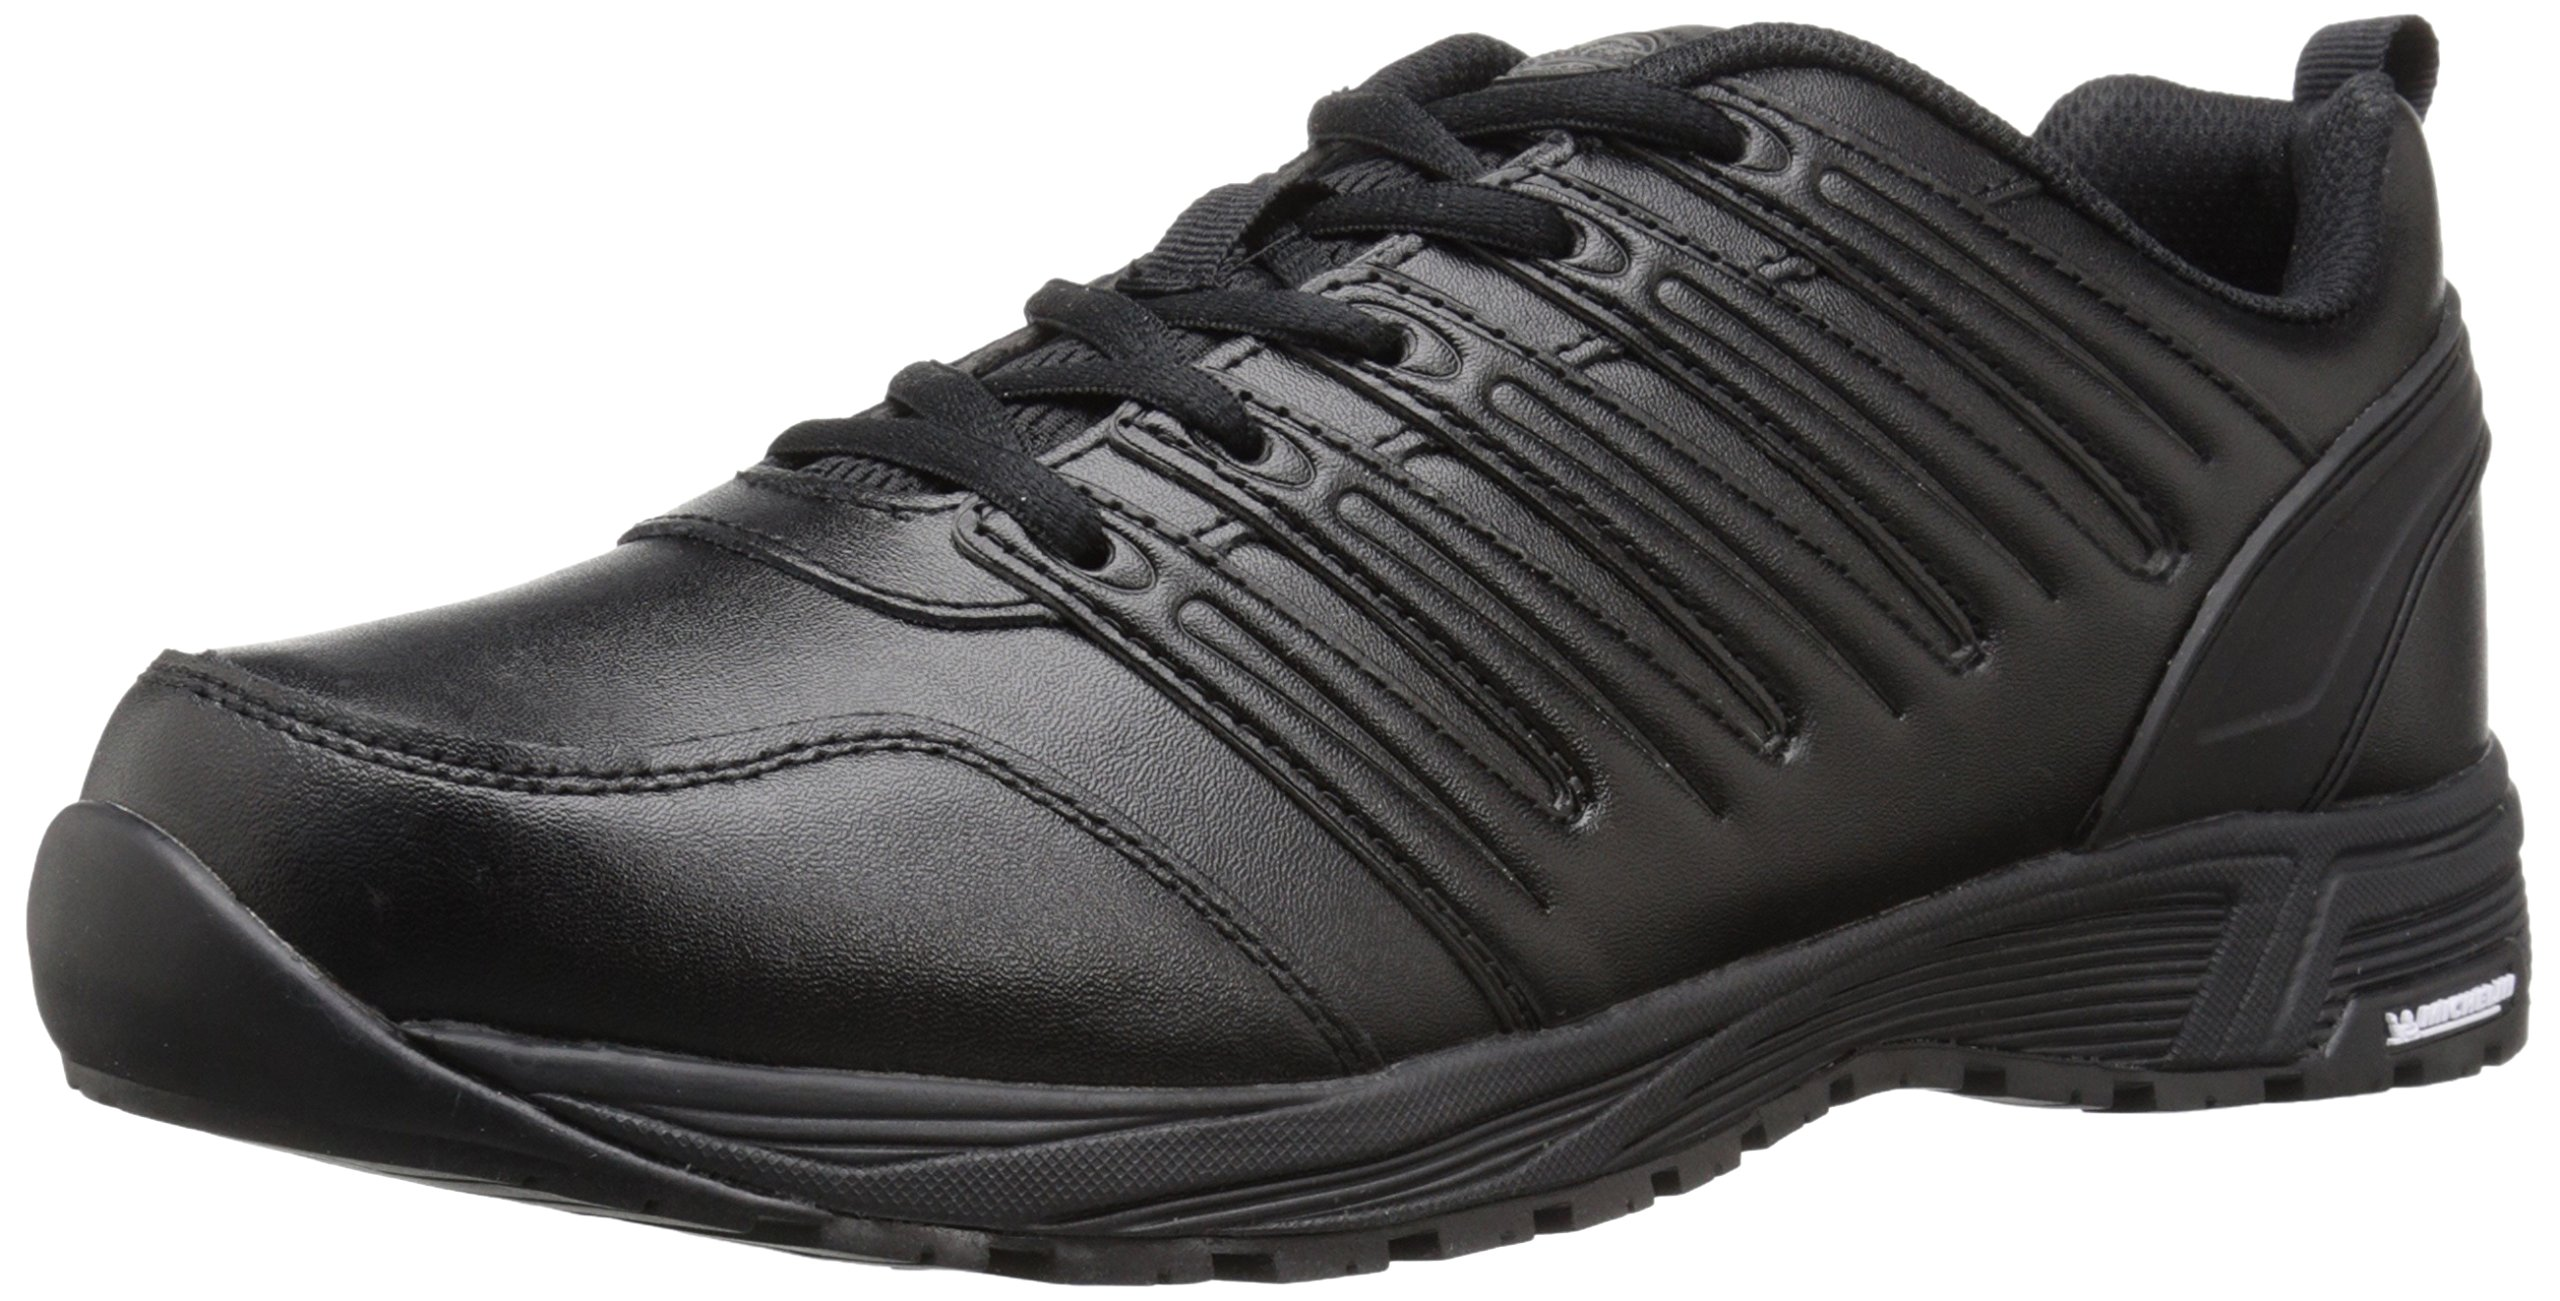 Dickies Men's Apex Health Care and Food Service Shoe, Black, 13 W US